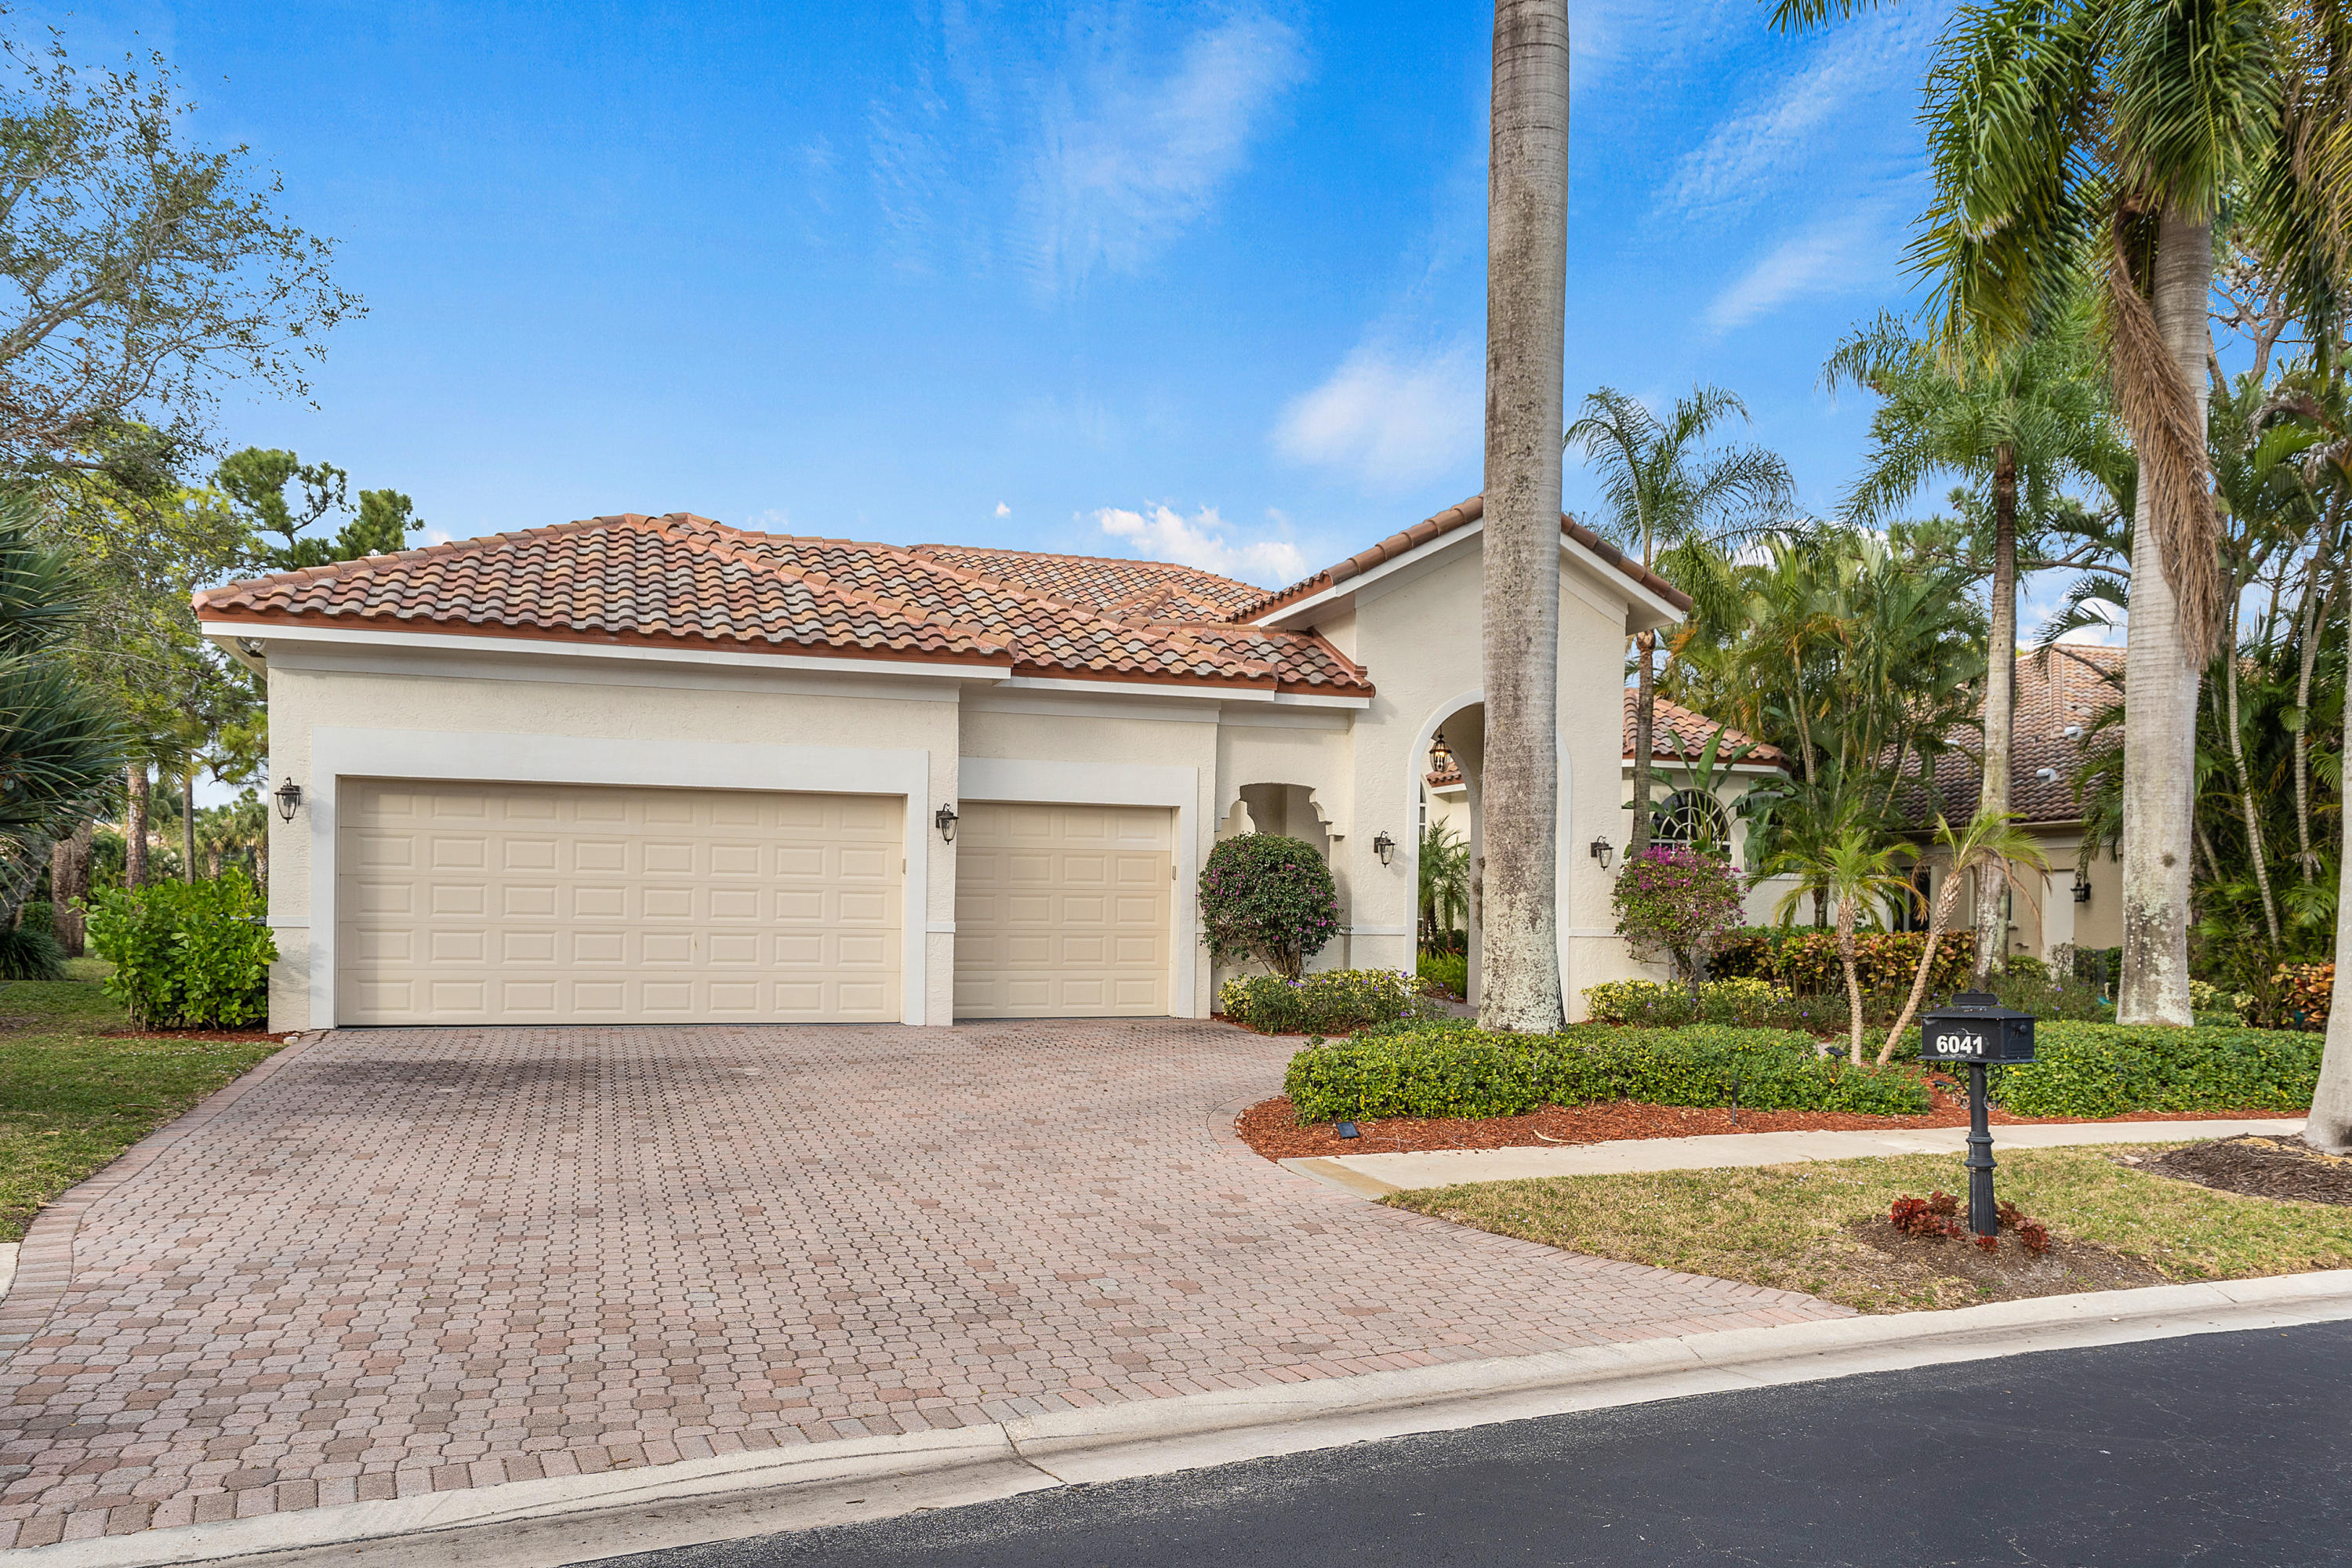 Home for sale in The Polo Club Delray Beach Florida